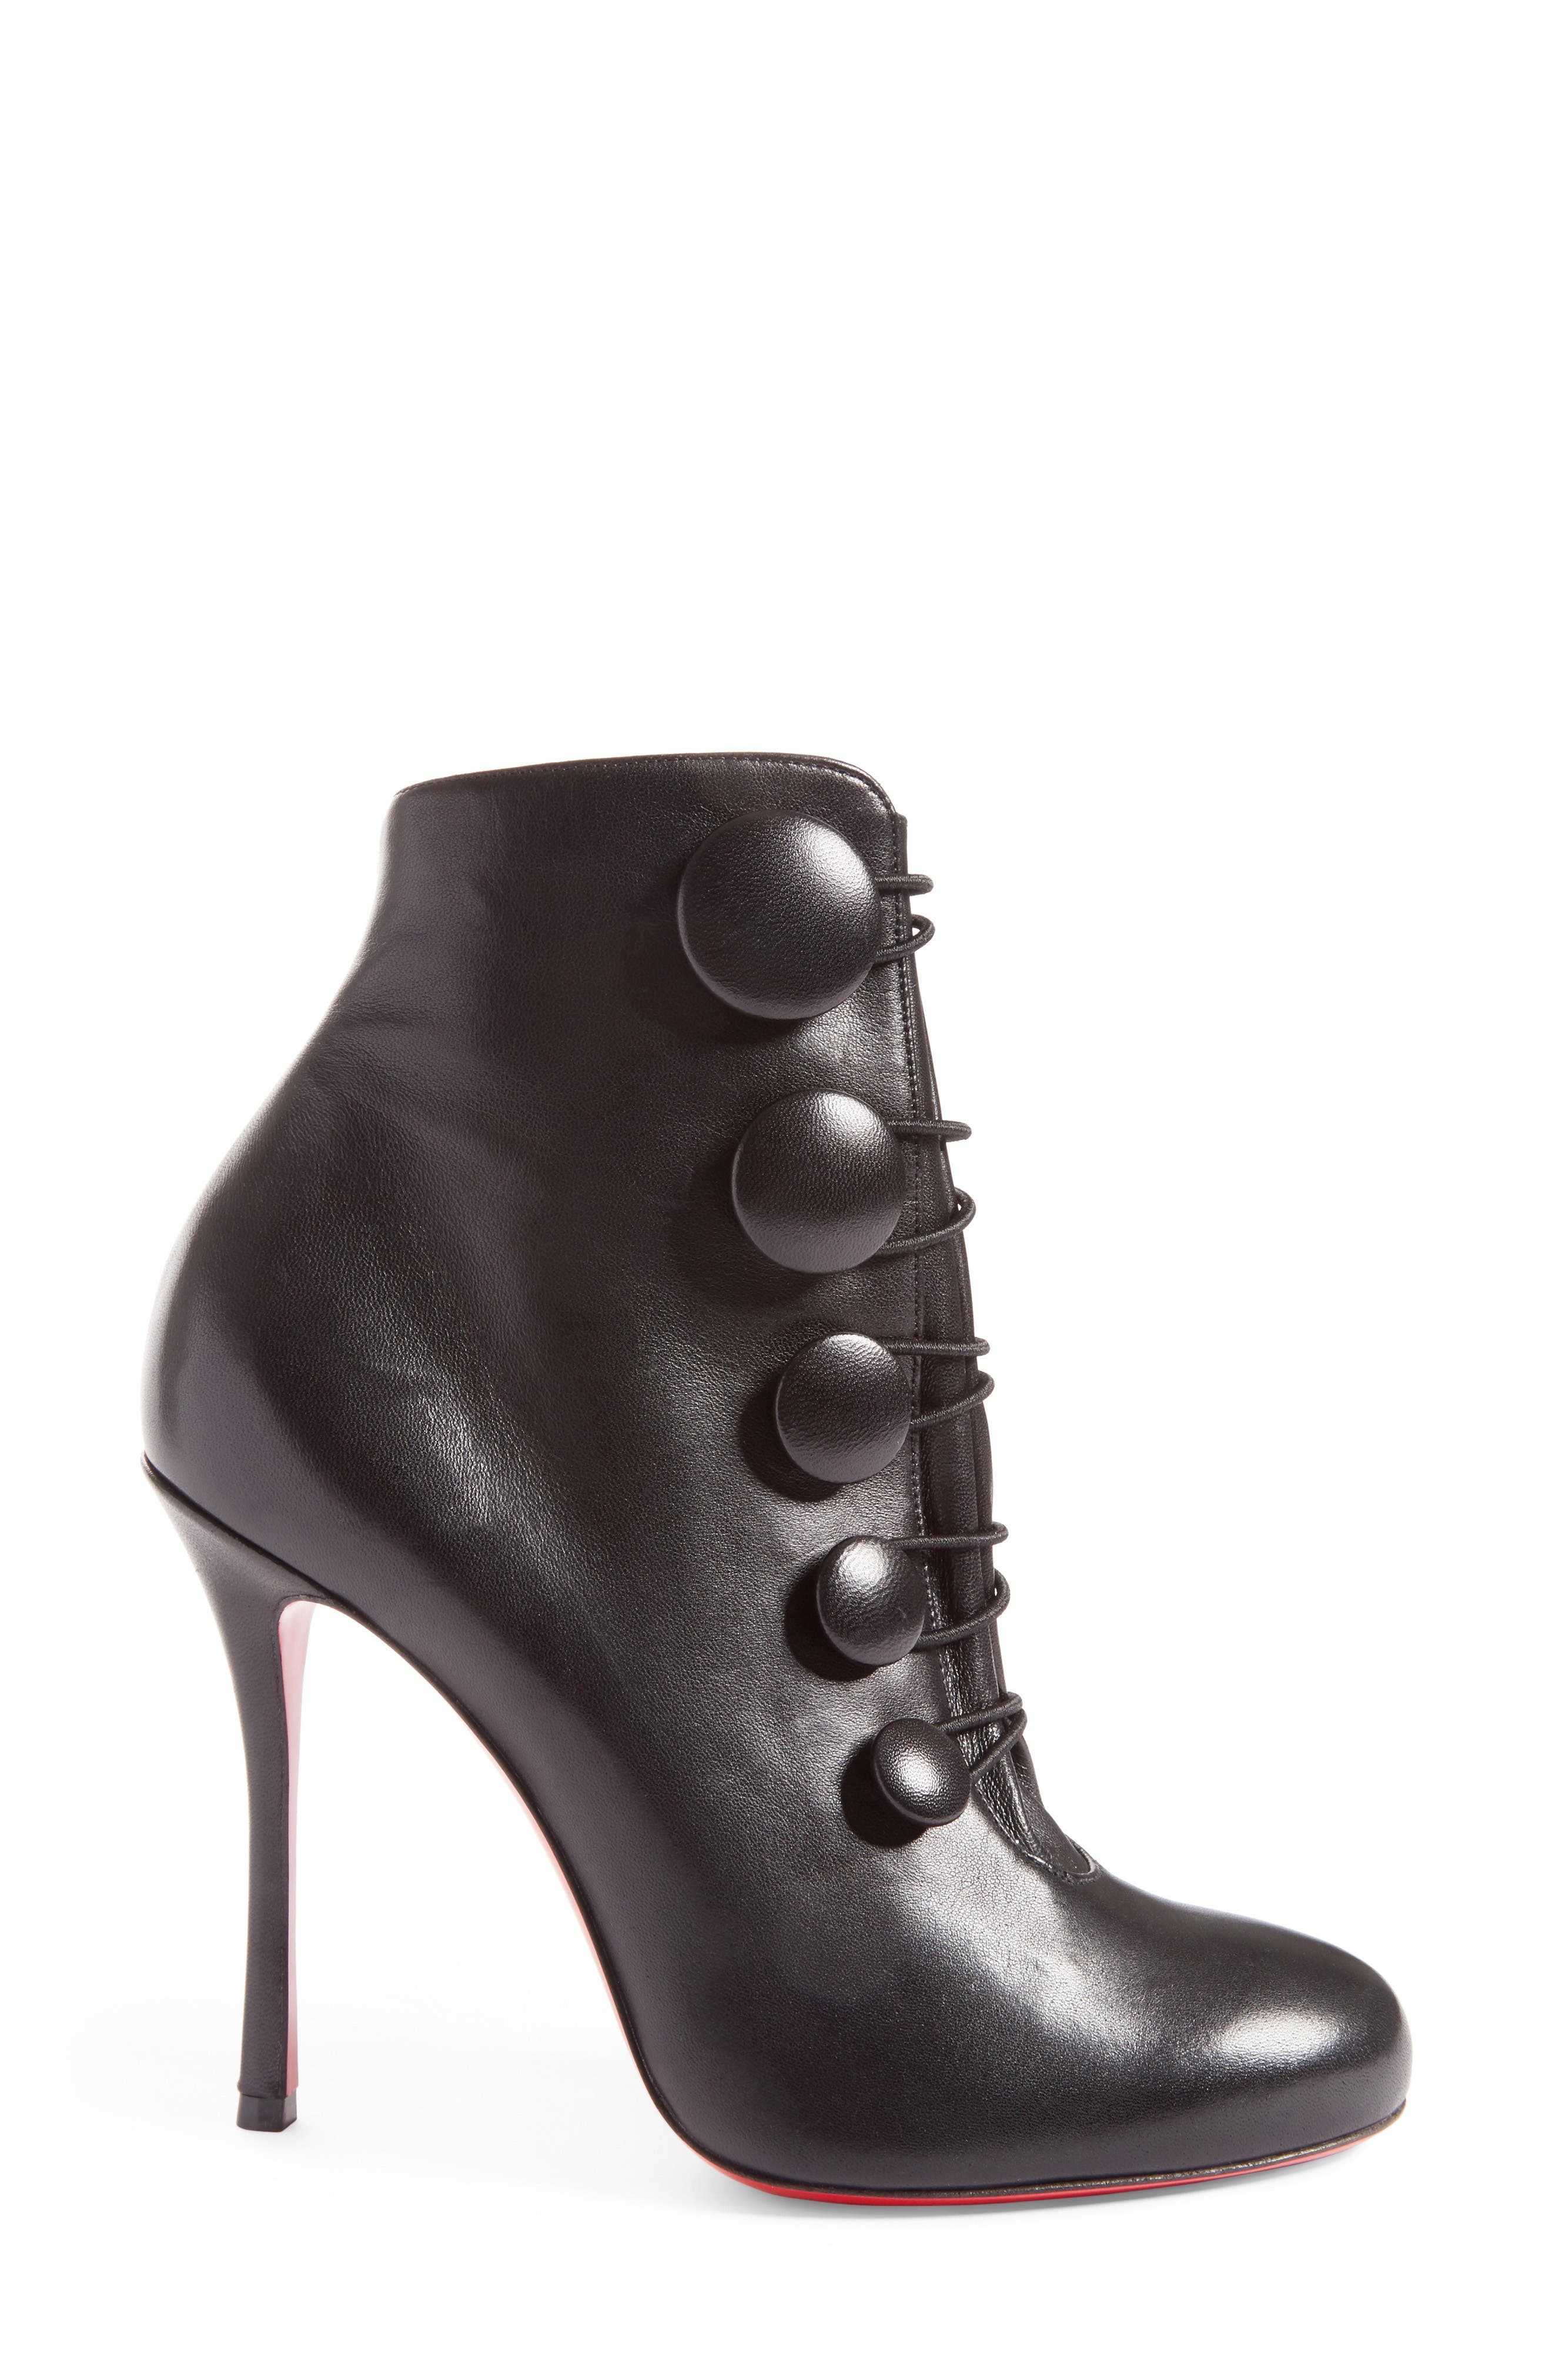 Booton Bootie,                             Alternate thumbnail 4, color,                             Black Leather